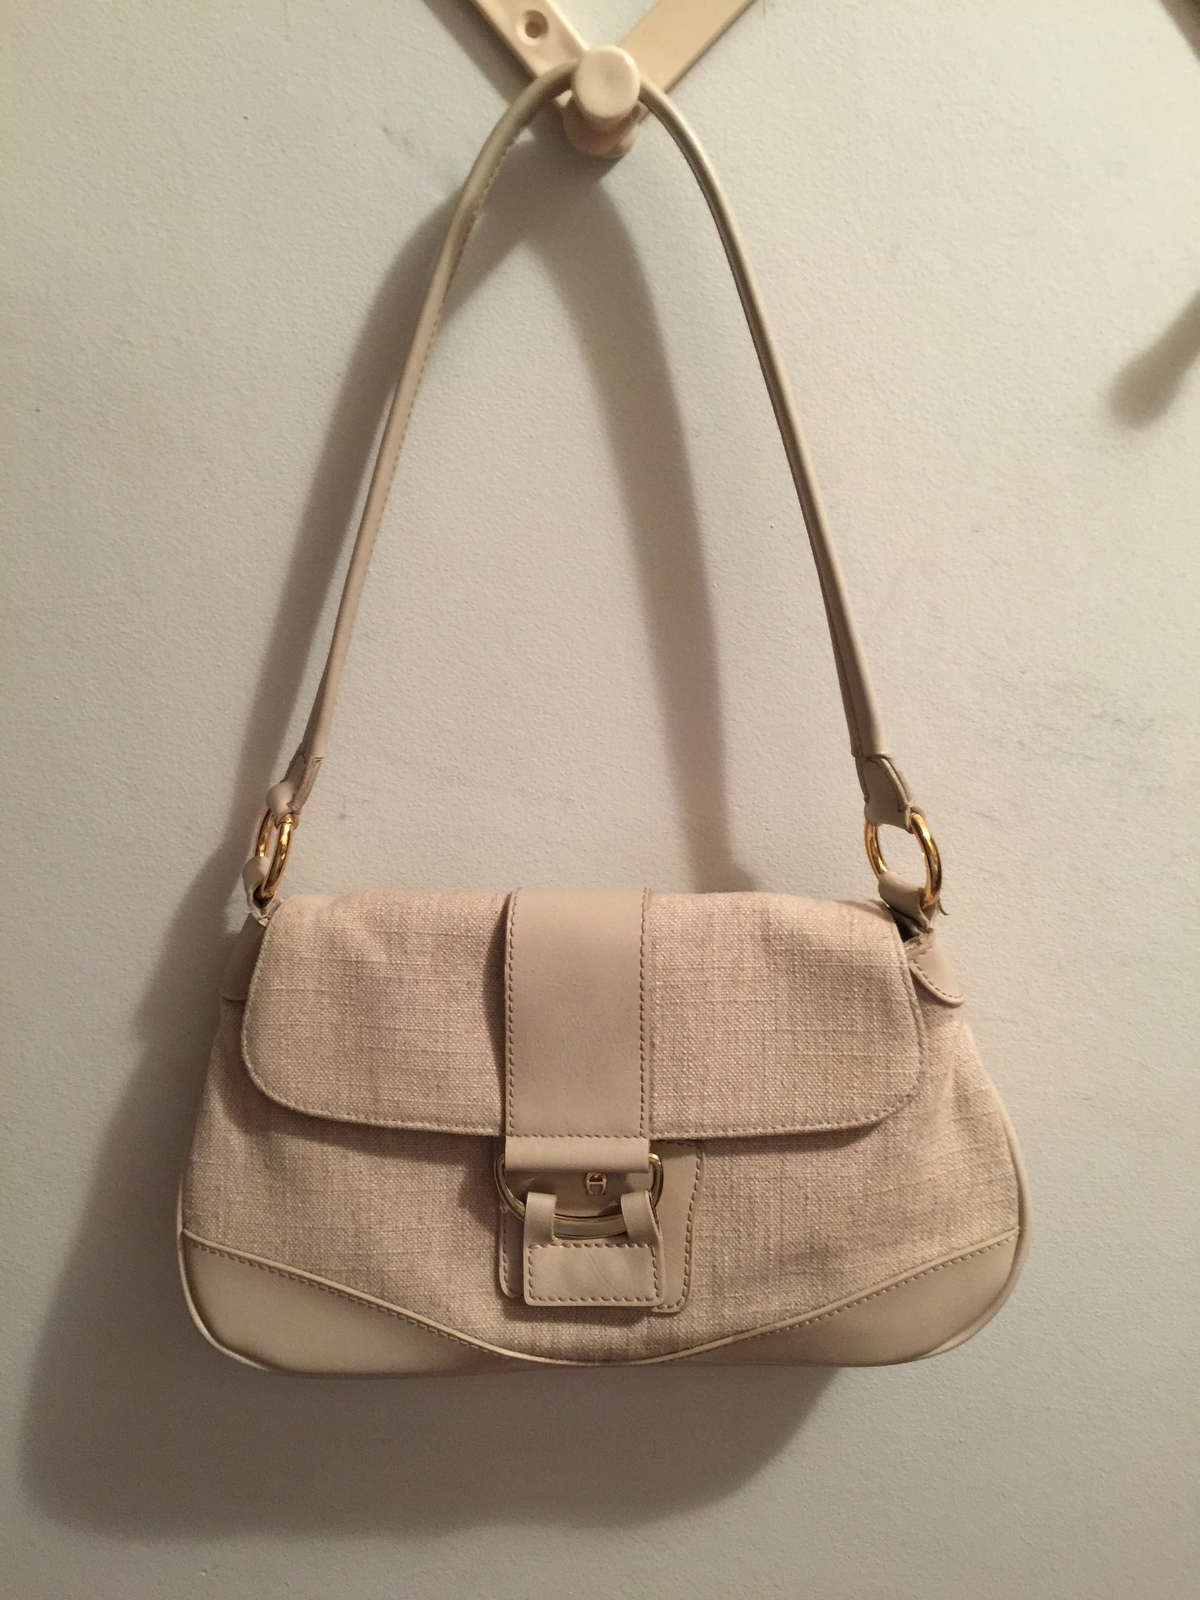 "Primary image for Oatmeal Beige Cream Linen & Rayon 12X7X4"" Hand Bag Etienne Aigner Purse"